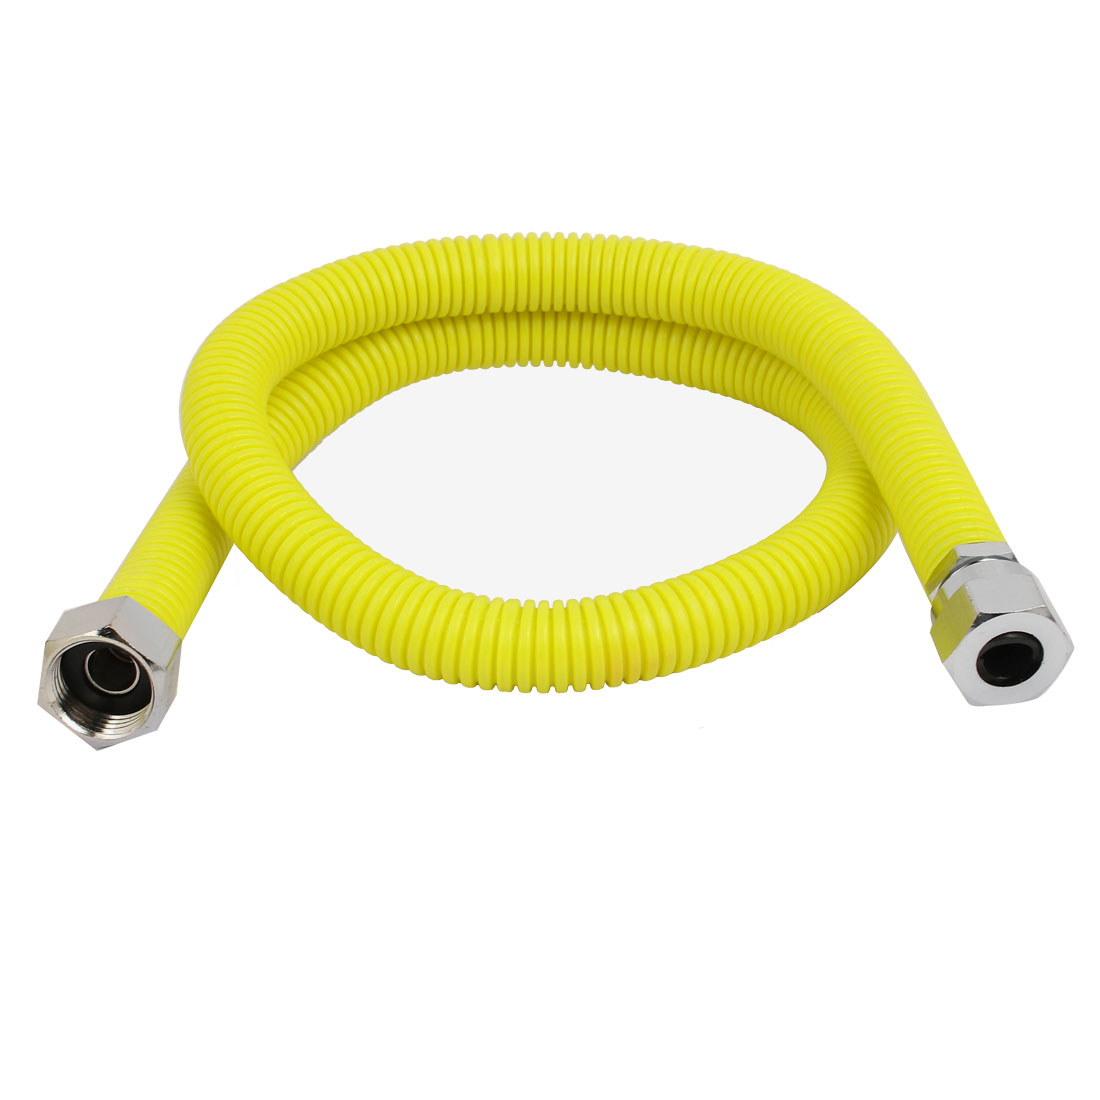 0.8M Length 304 Stainless Steel Flexible Gas Range Connector Plumbing Fitting